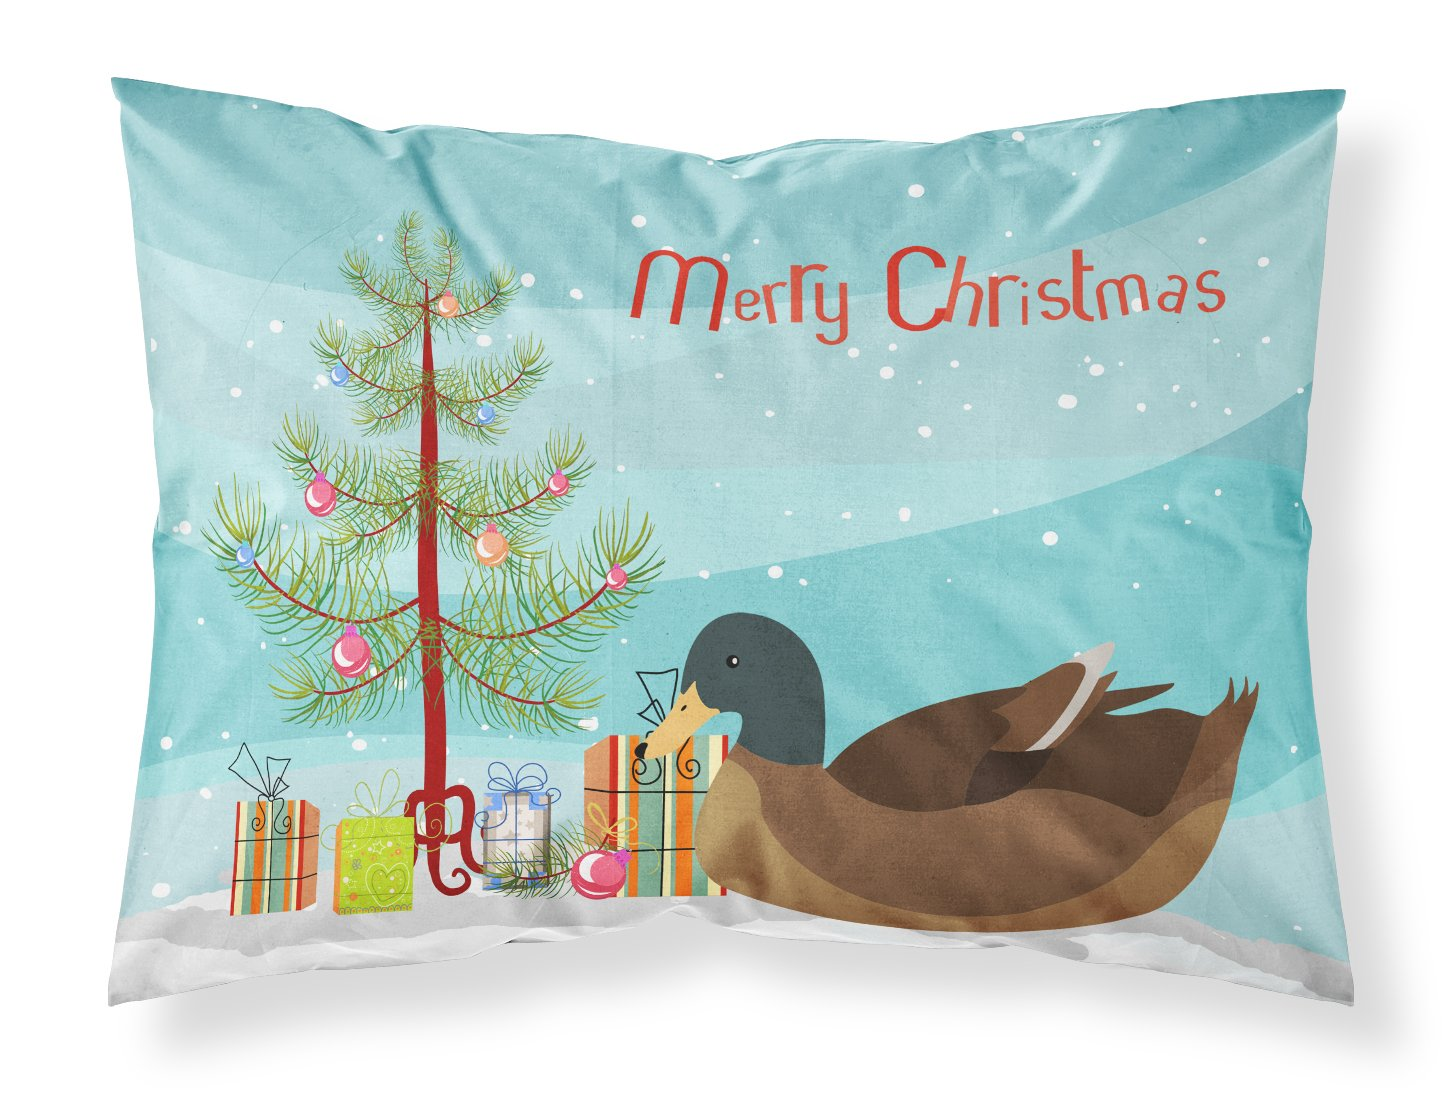 Khaki Campbell Duck Christmas Fabric Standard Pillowcase BB9233PILLOWCASE by Caroline's Treasures